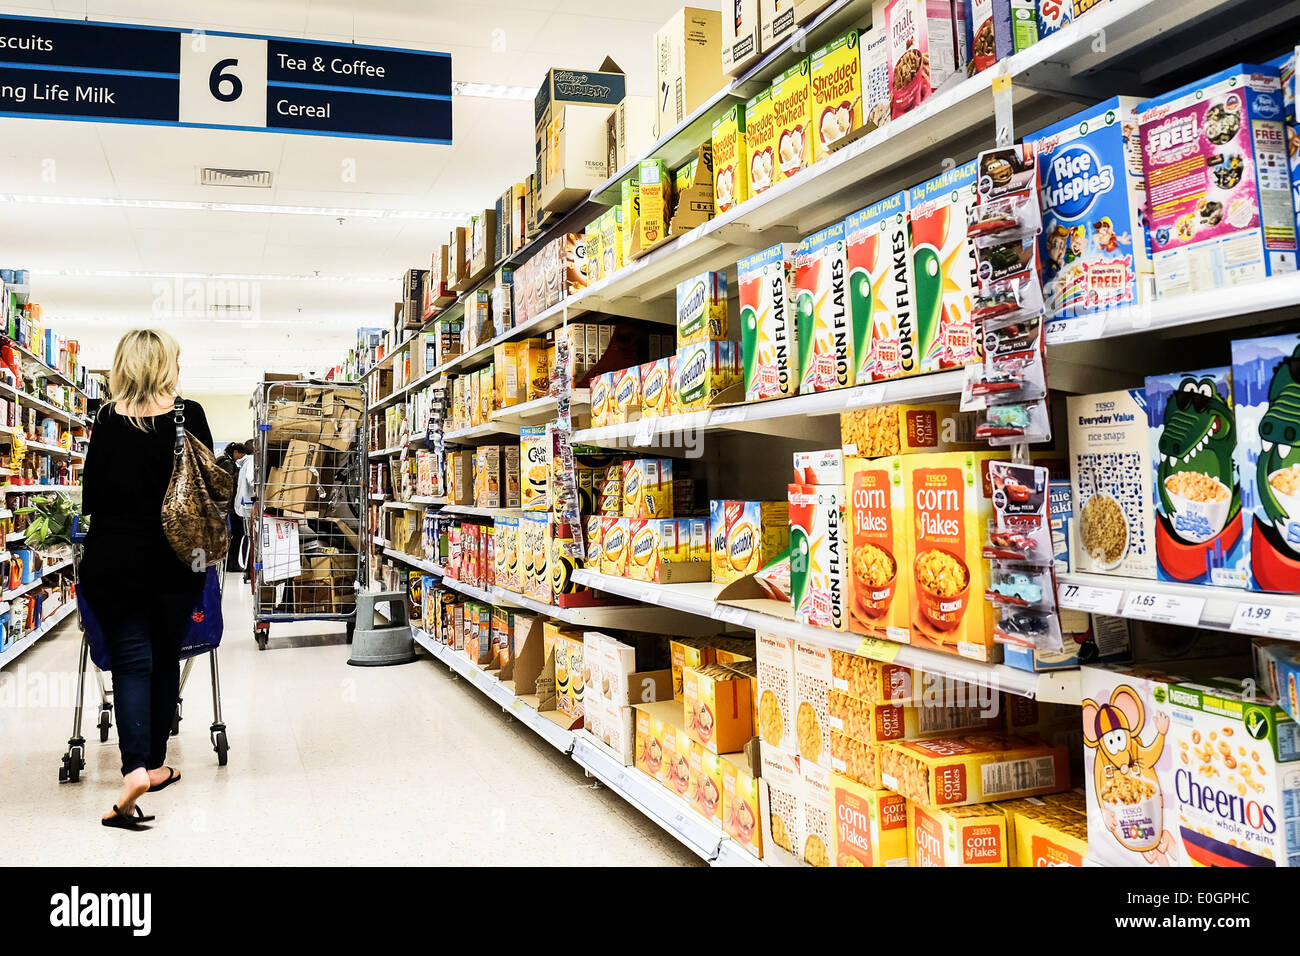 An aisle in a Tesco supermarket in Essex. - Stock Image